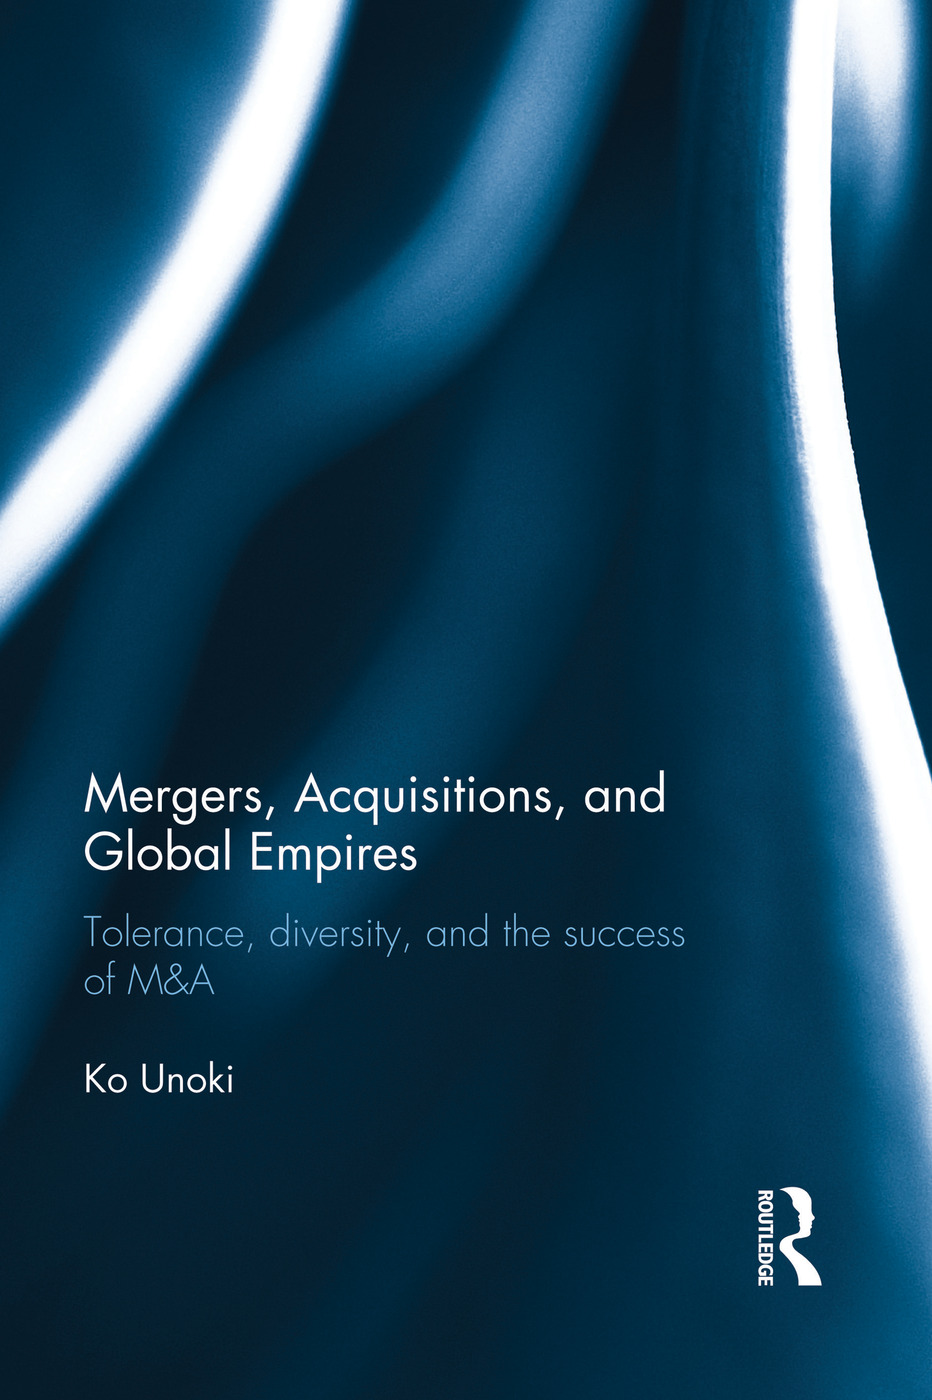 Mergers, Acquisitions and Global Empires: Tolerance, Diversity and the Success of M&A book cover